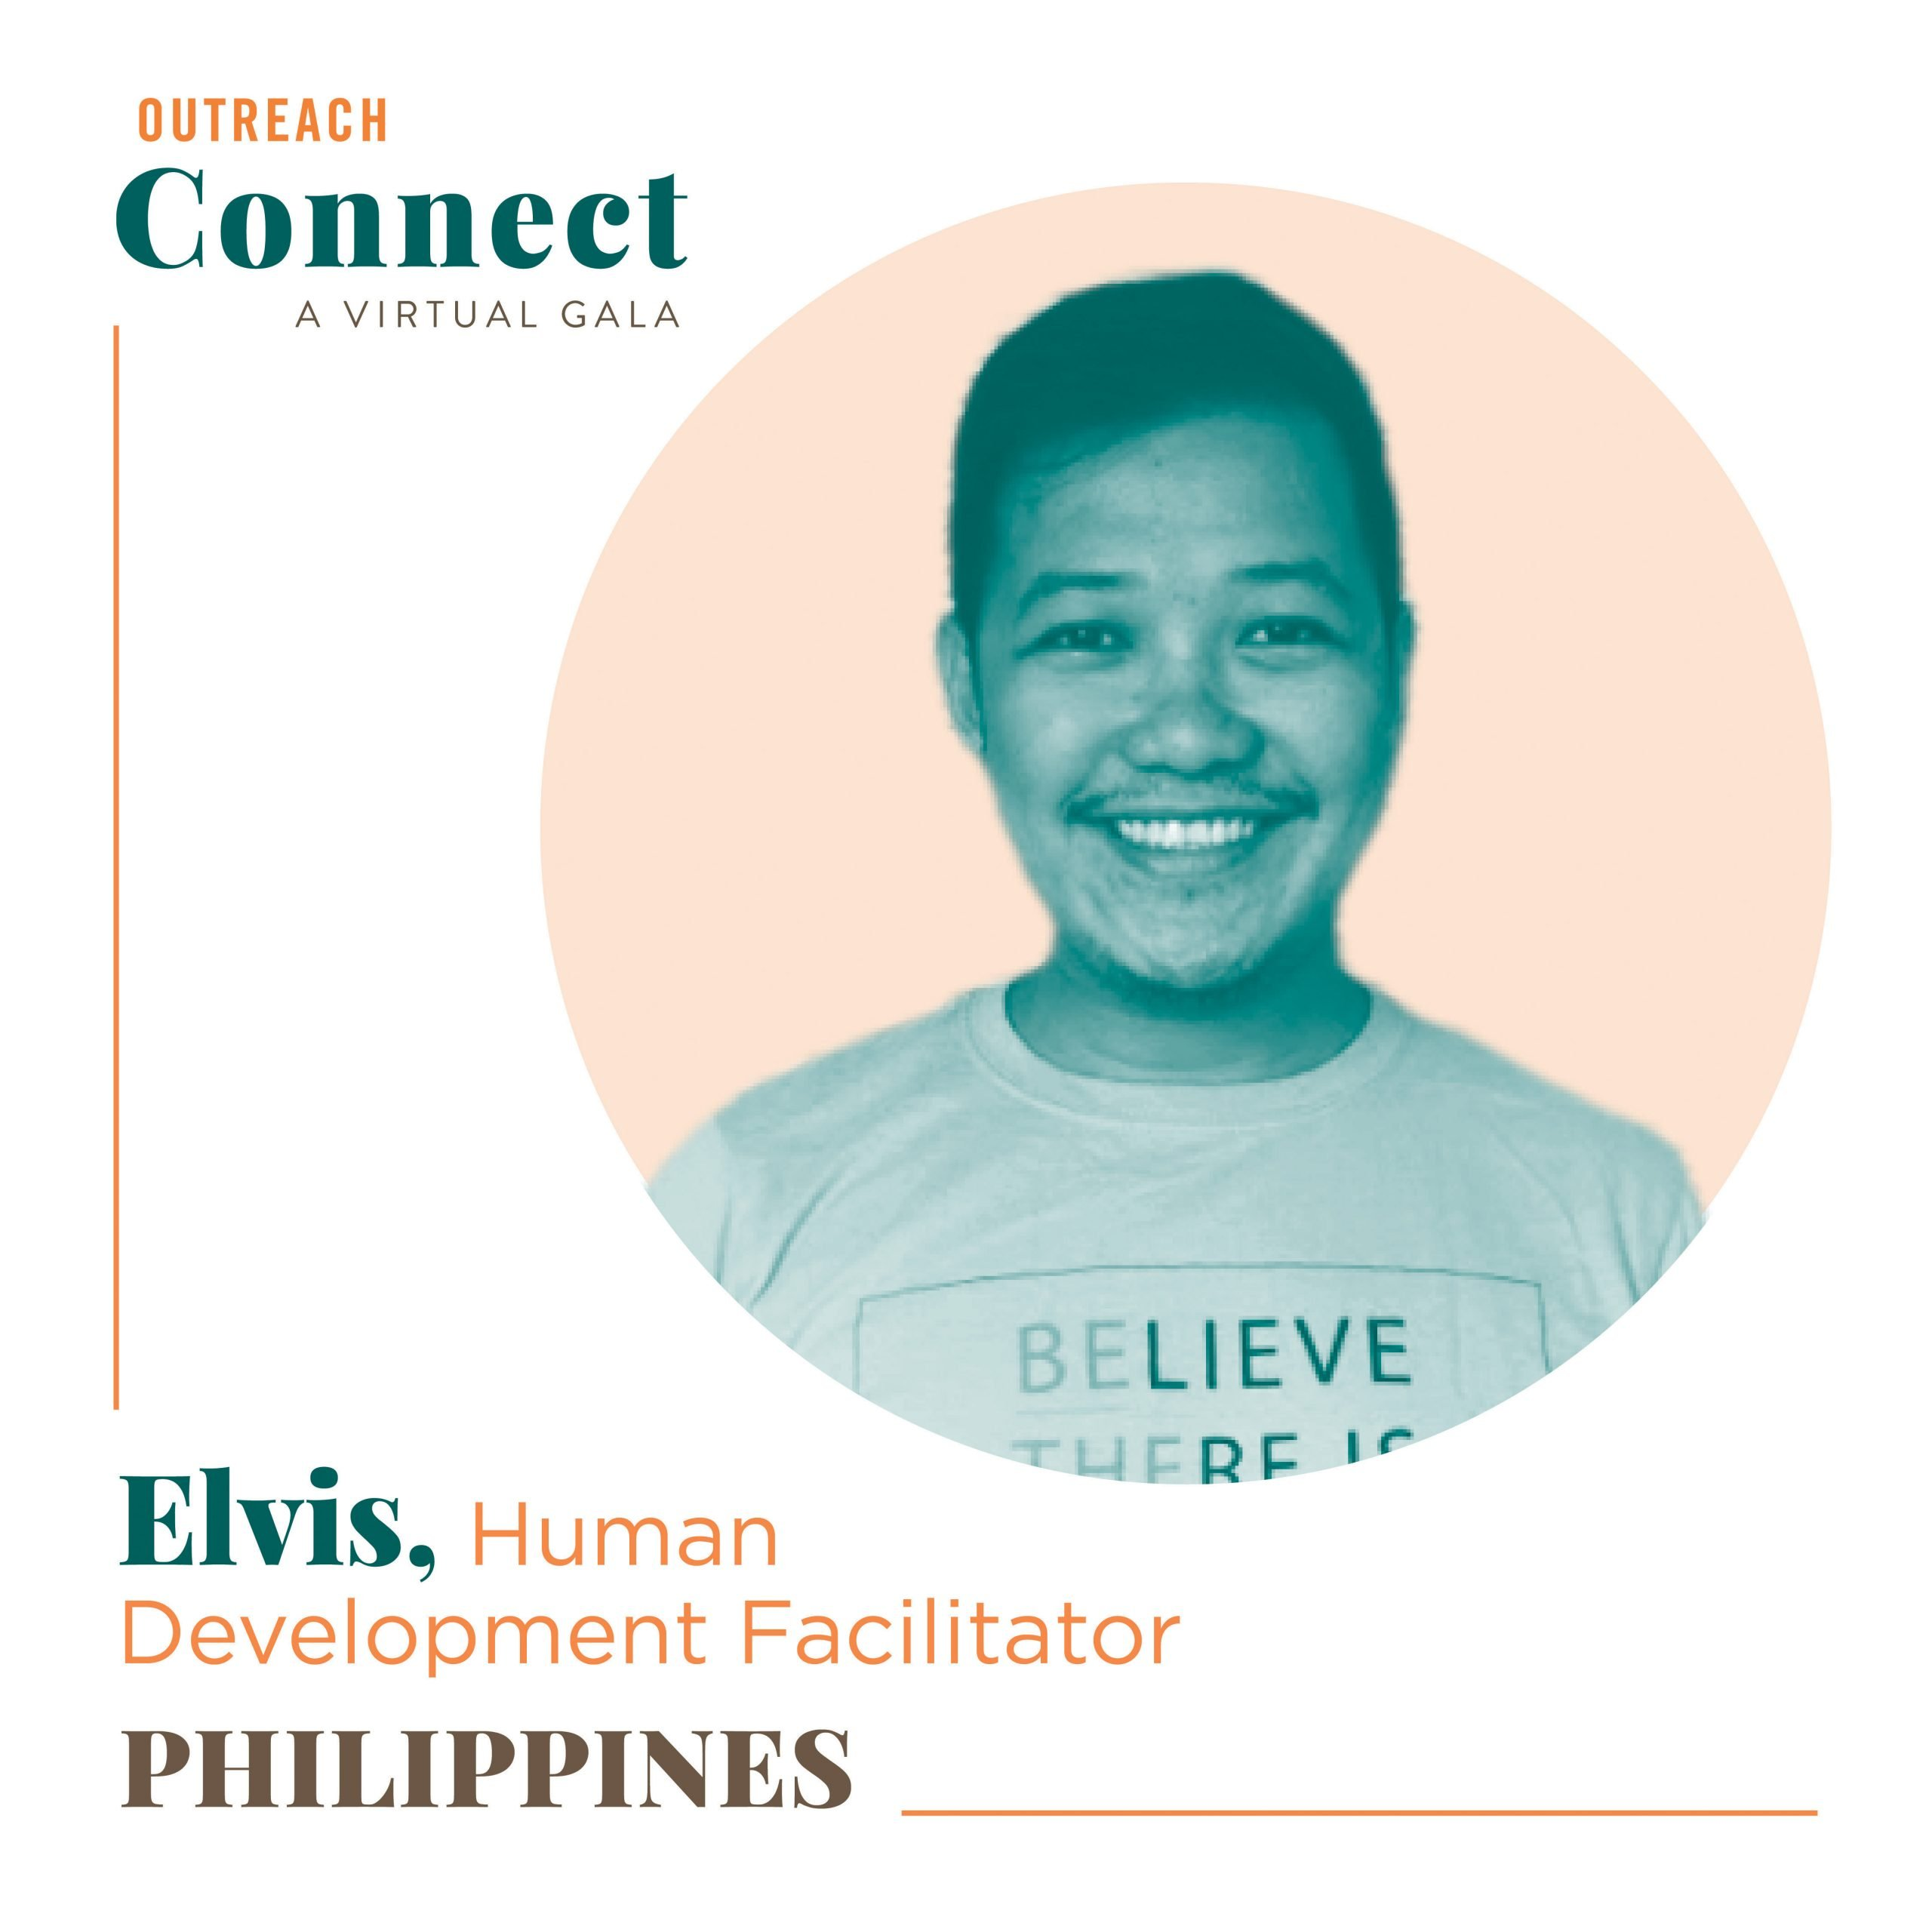 Elvis, an Outreach HDF from the Philippines